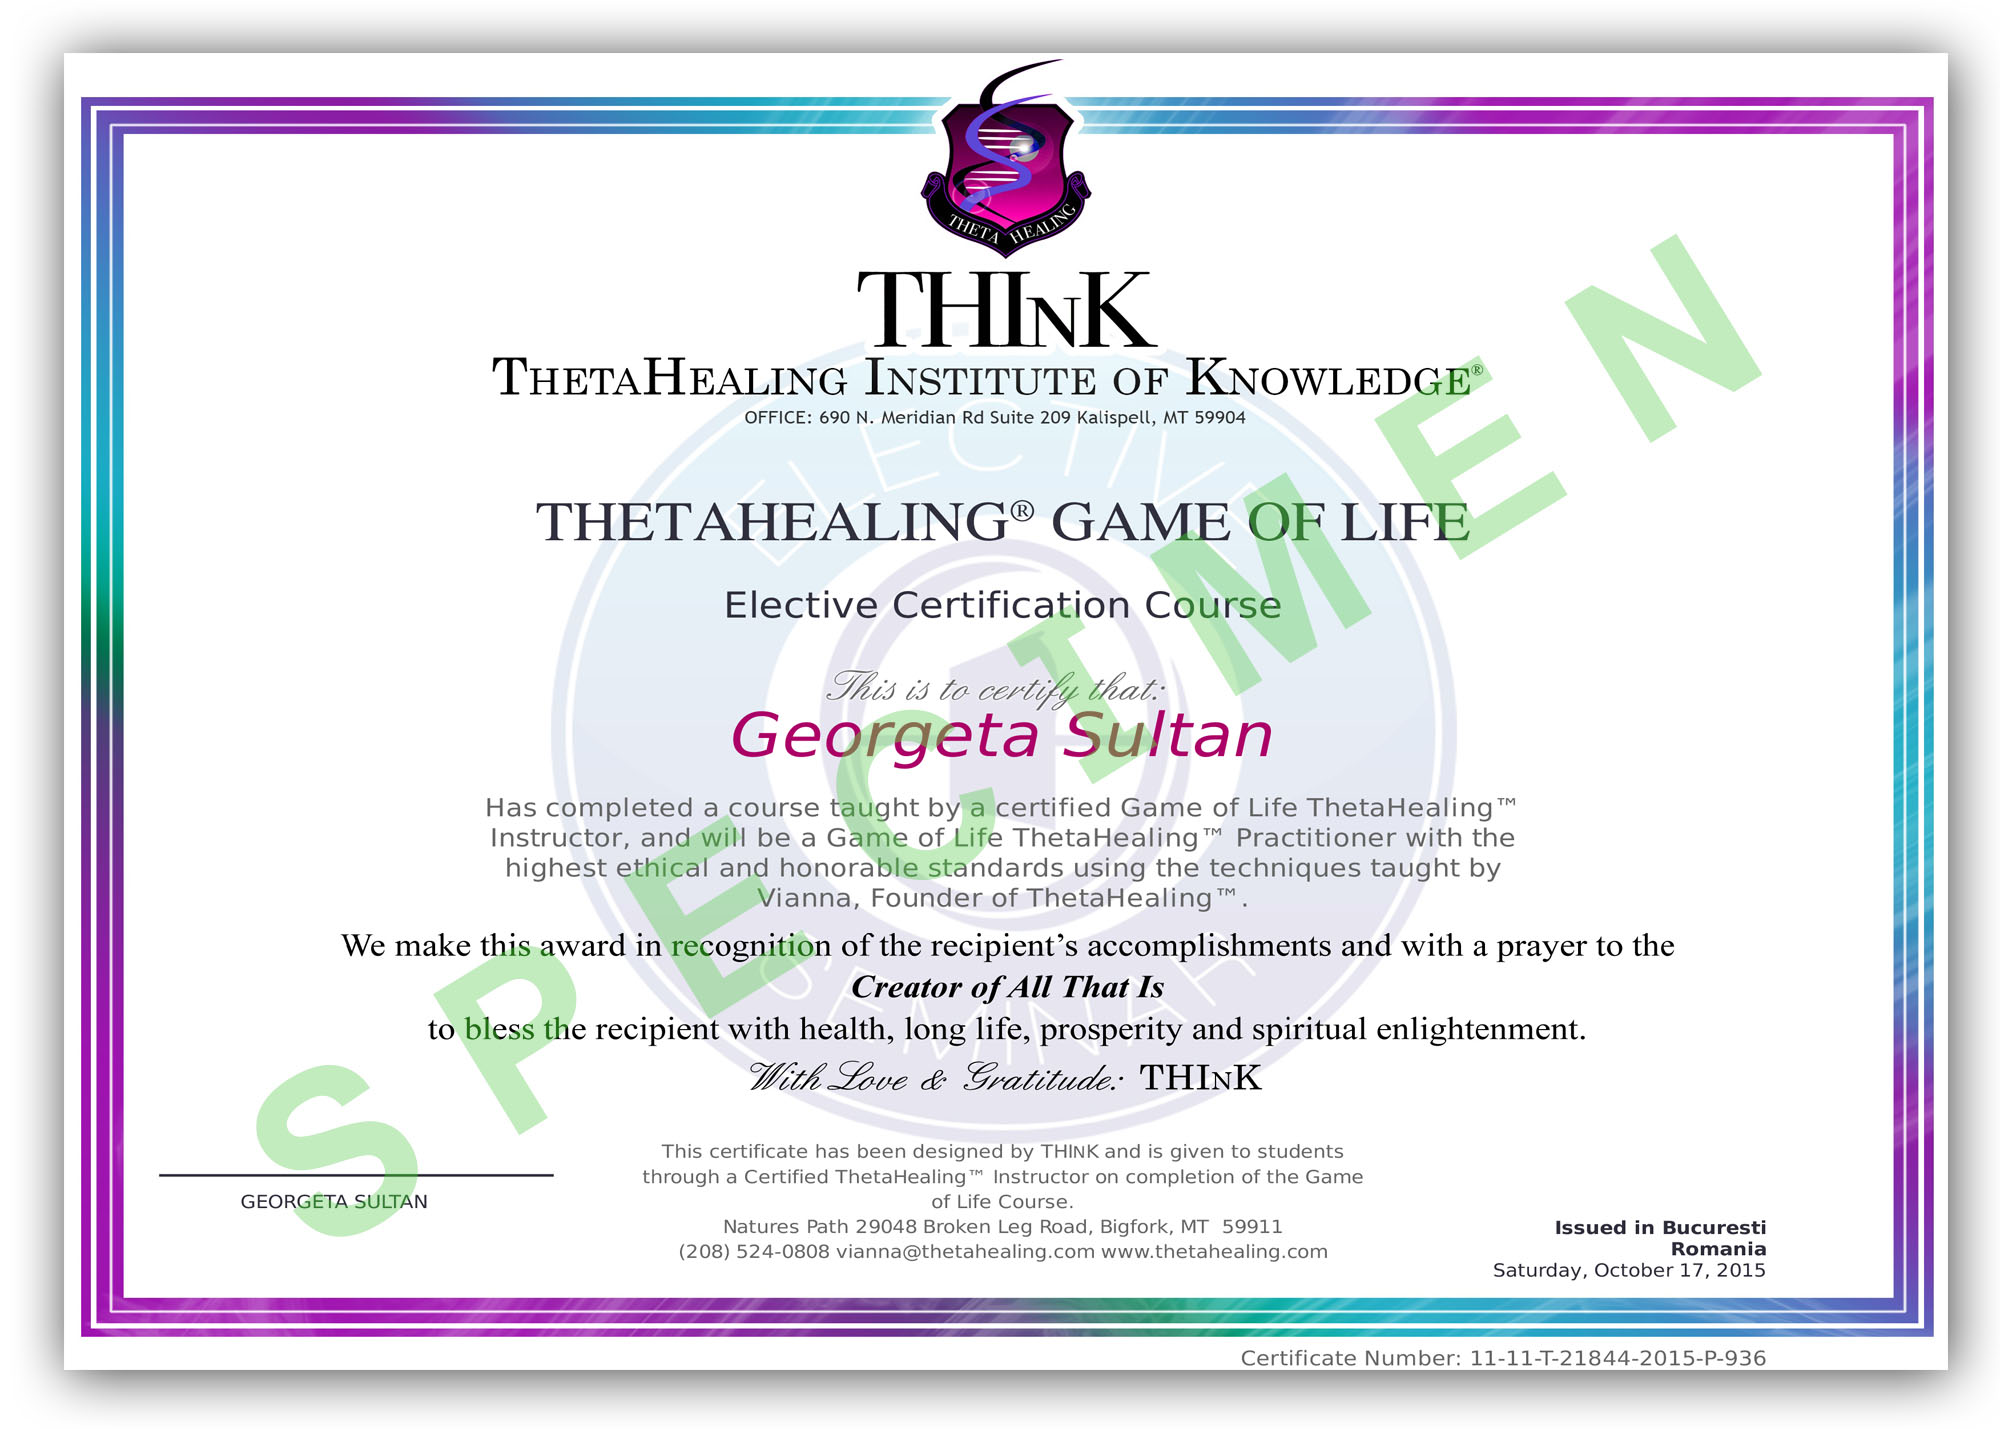 certificat-practicant-game-of-life